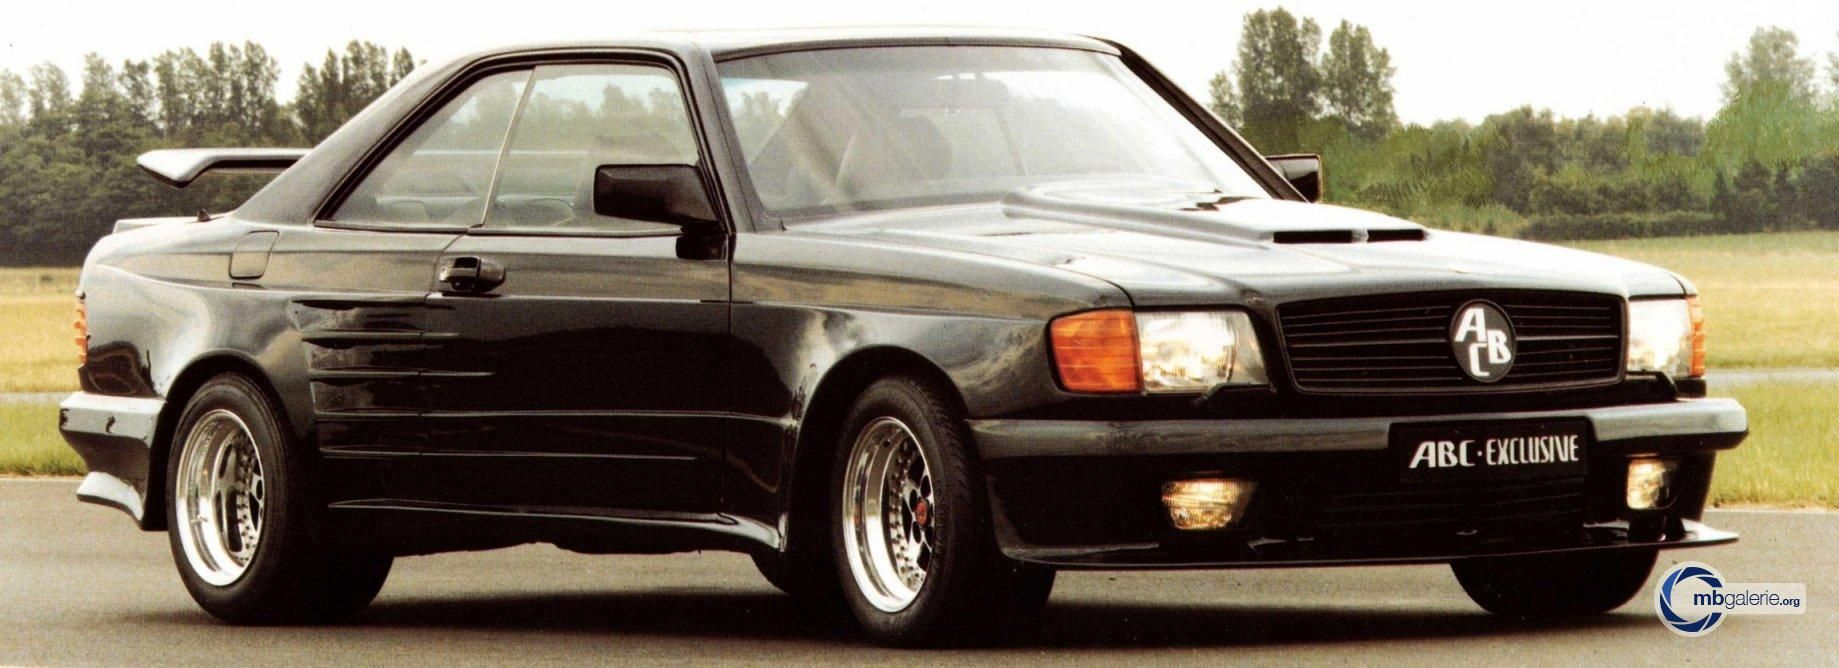 mercedes benz sec class w126 widebody by abc exclusive tuning MB Wheels mercedes benz sec class w126 widebody by abc exclusive tuning pany